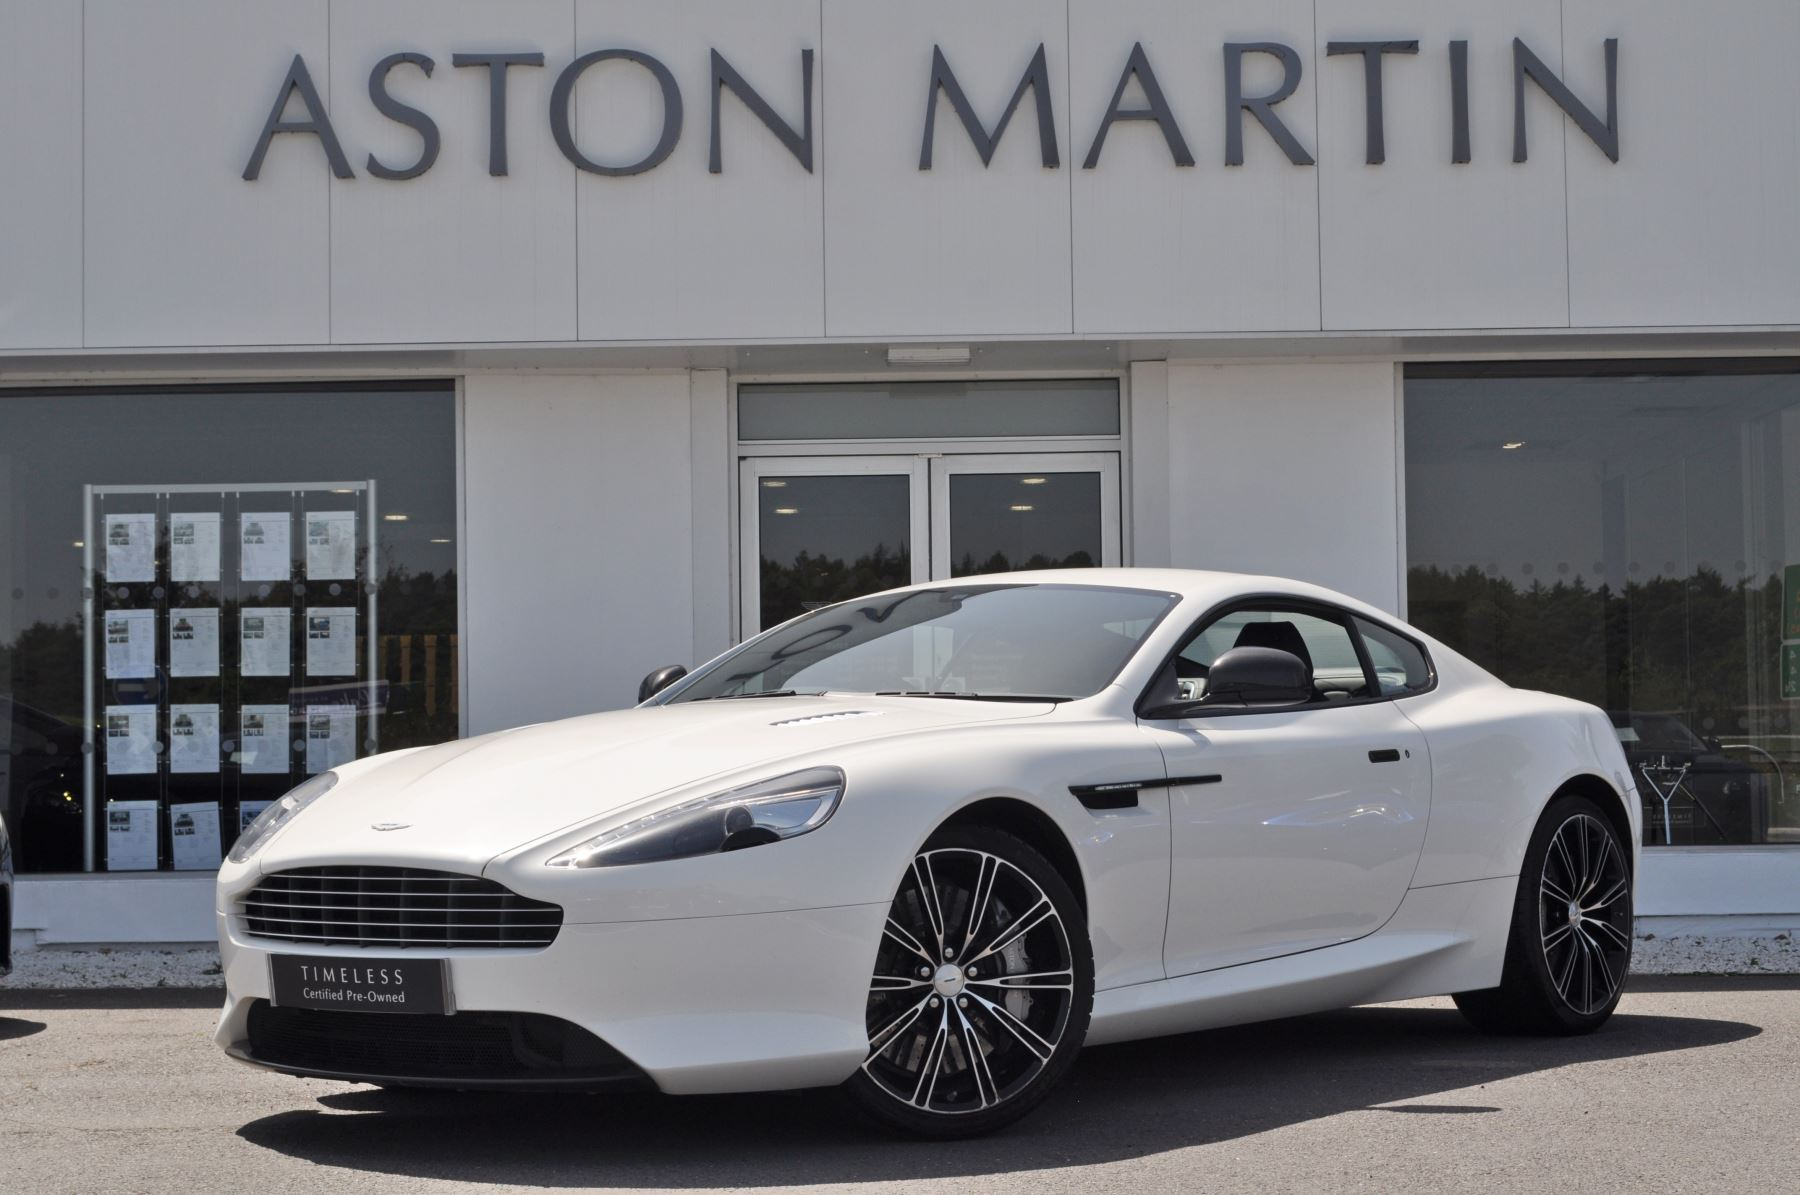 Aston Martin DB9 Carbon Edition V12 Carbon 2dr Touchtronic Auto 5.9 Automatic 3 door Coupe (2015)